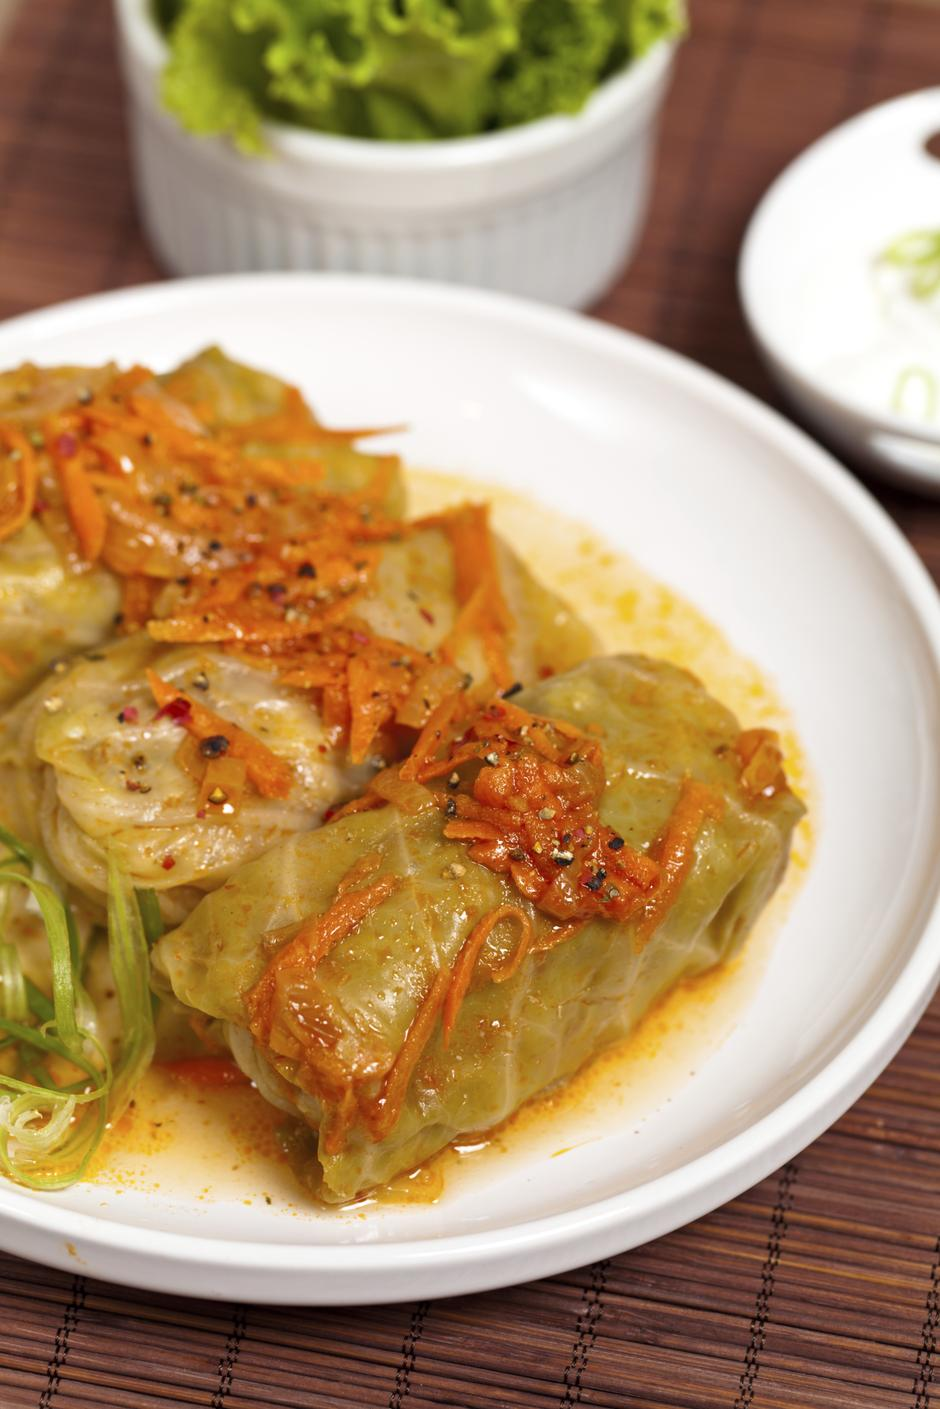 sarma | Author: Thinkstock